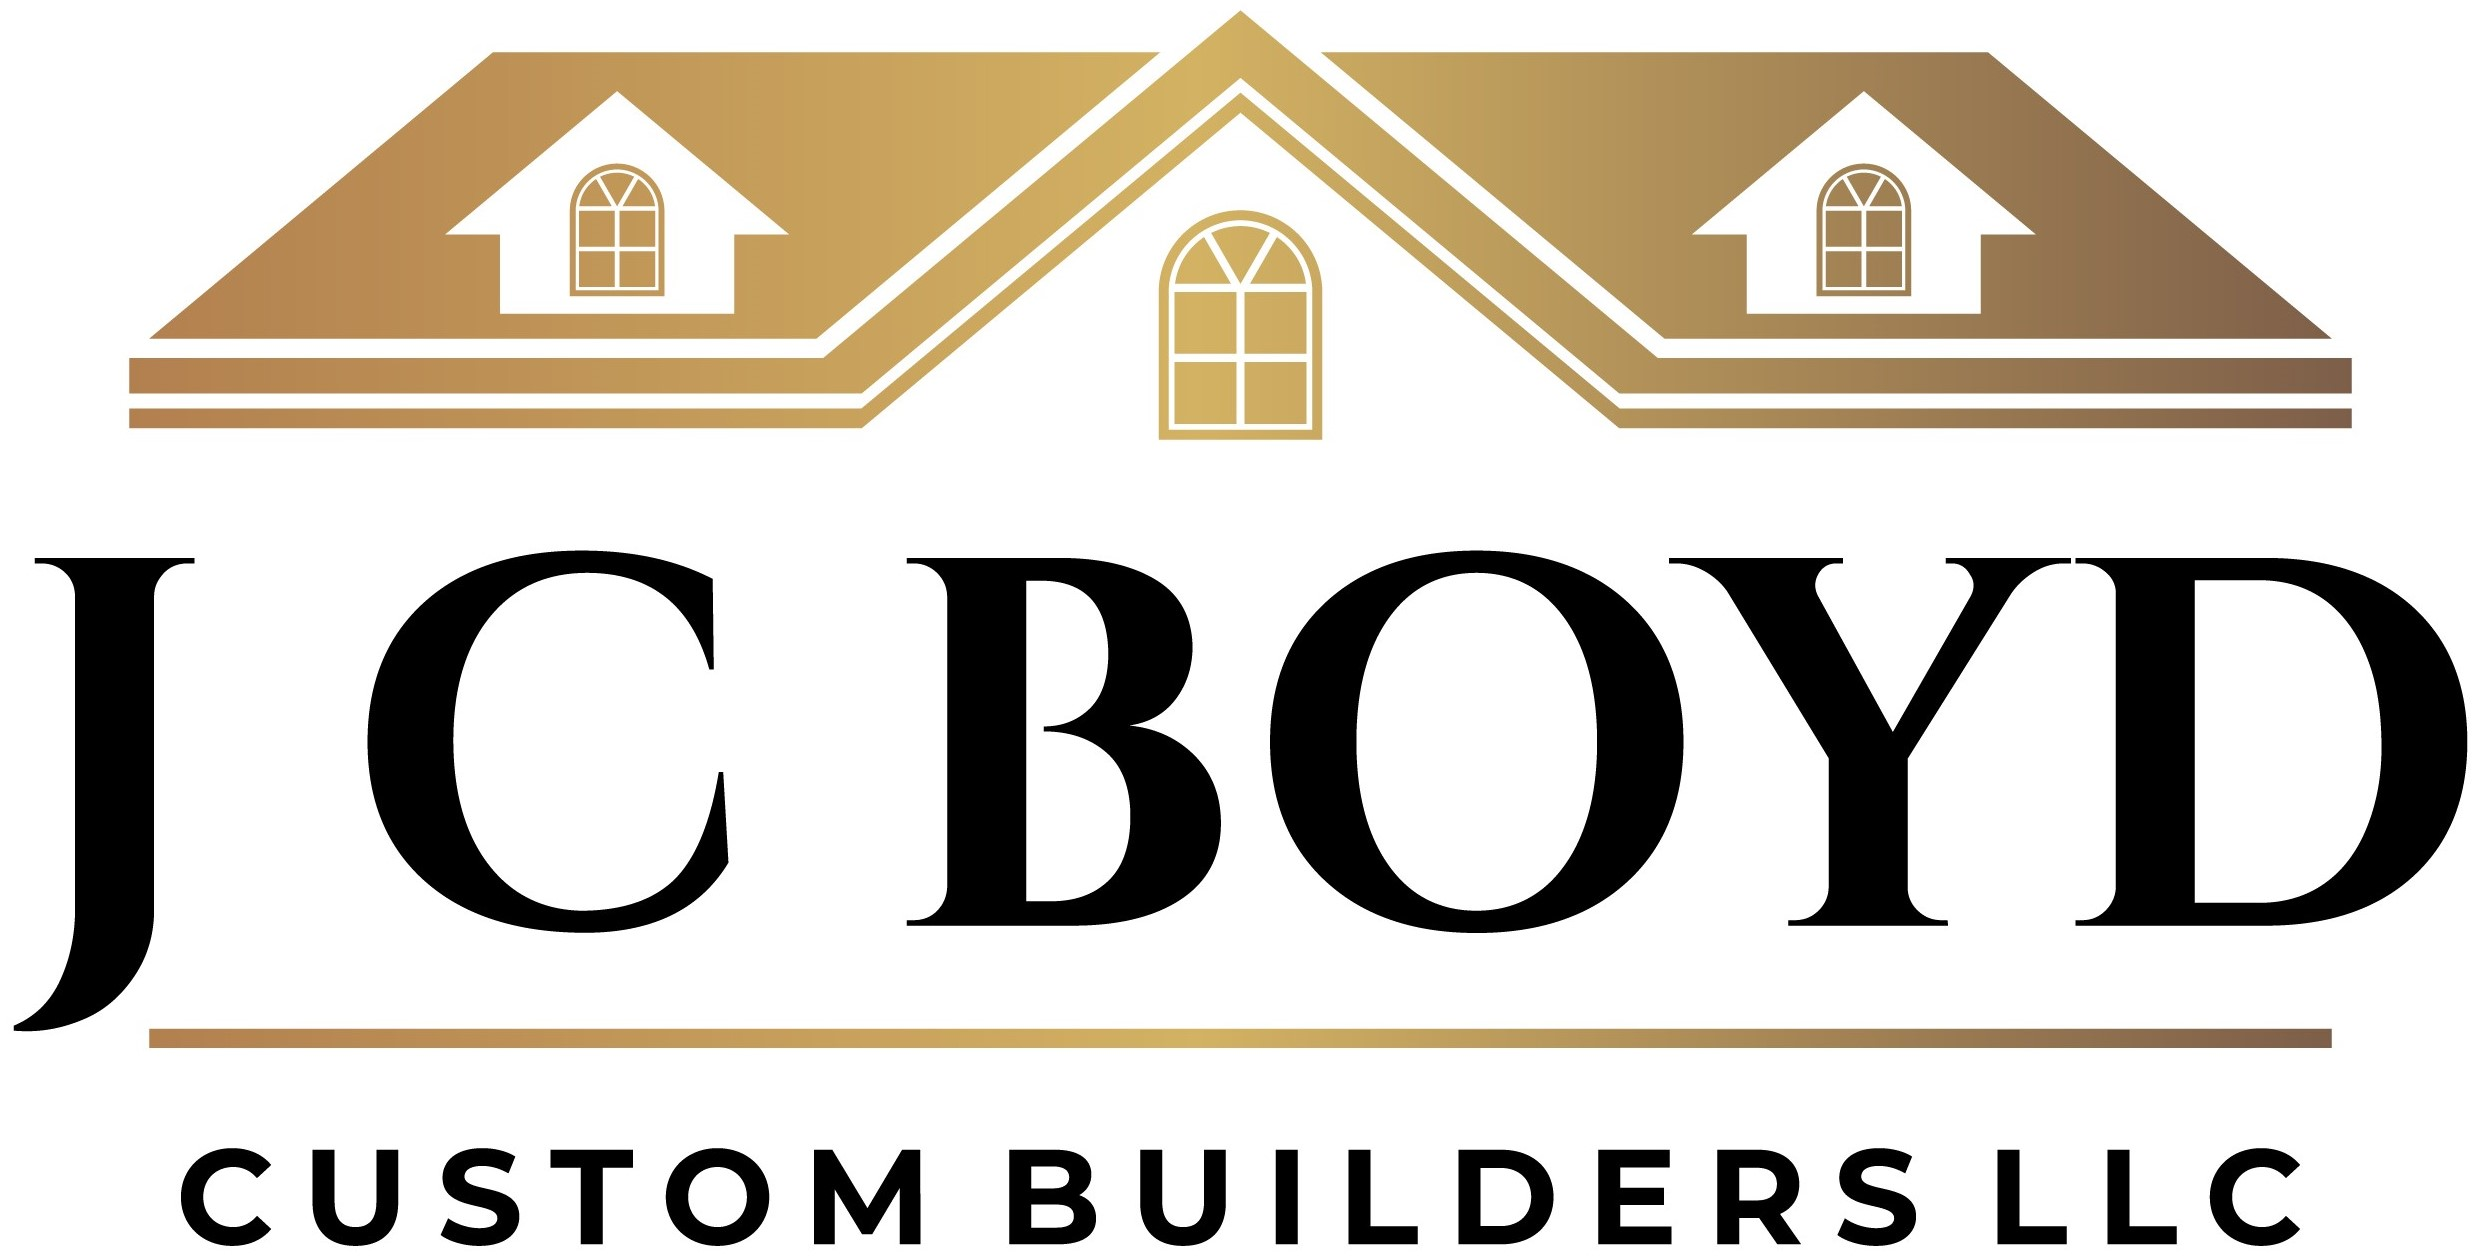 J C Boyd Custom Builders, LLC